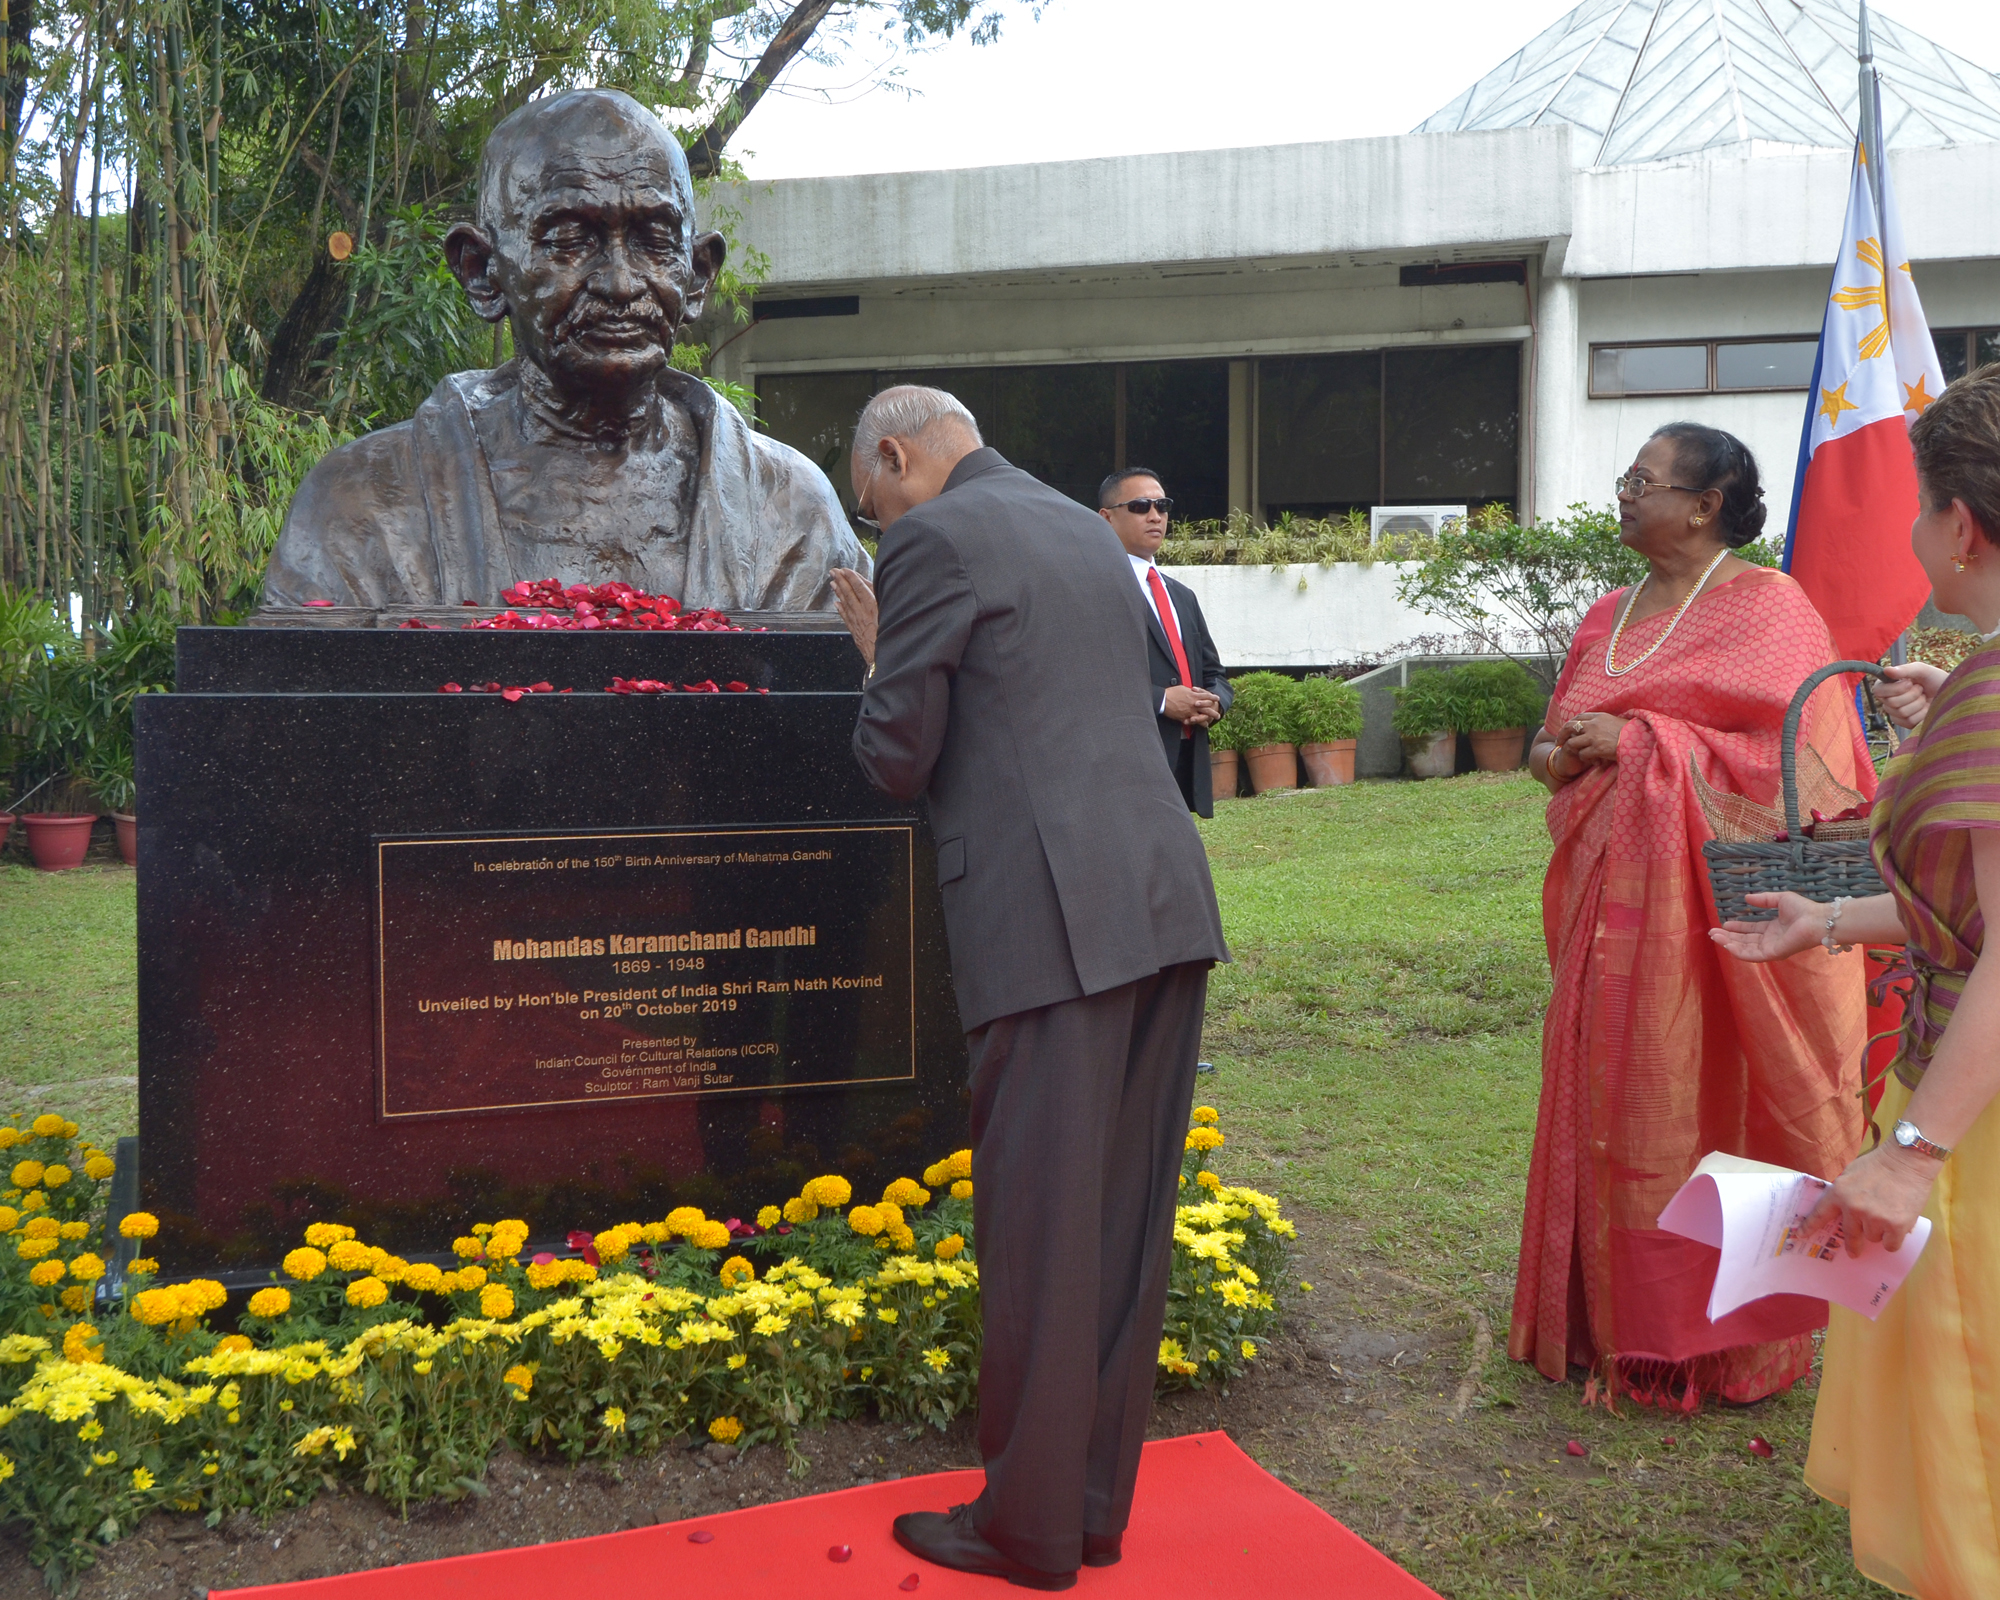 Indian President unveils first Mahatma Gandhi bust in the Philippines